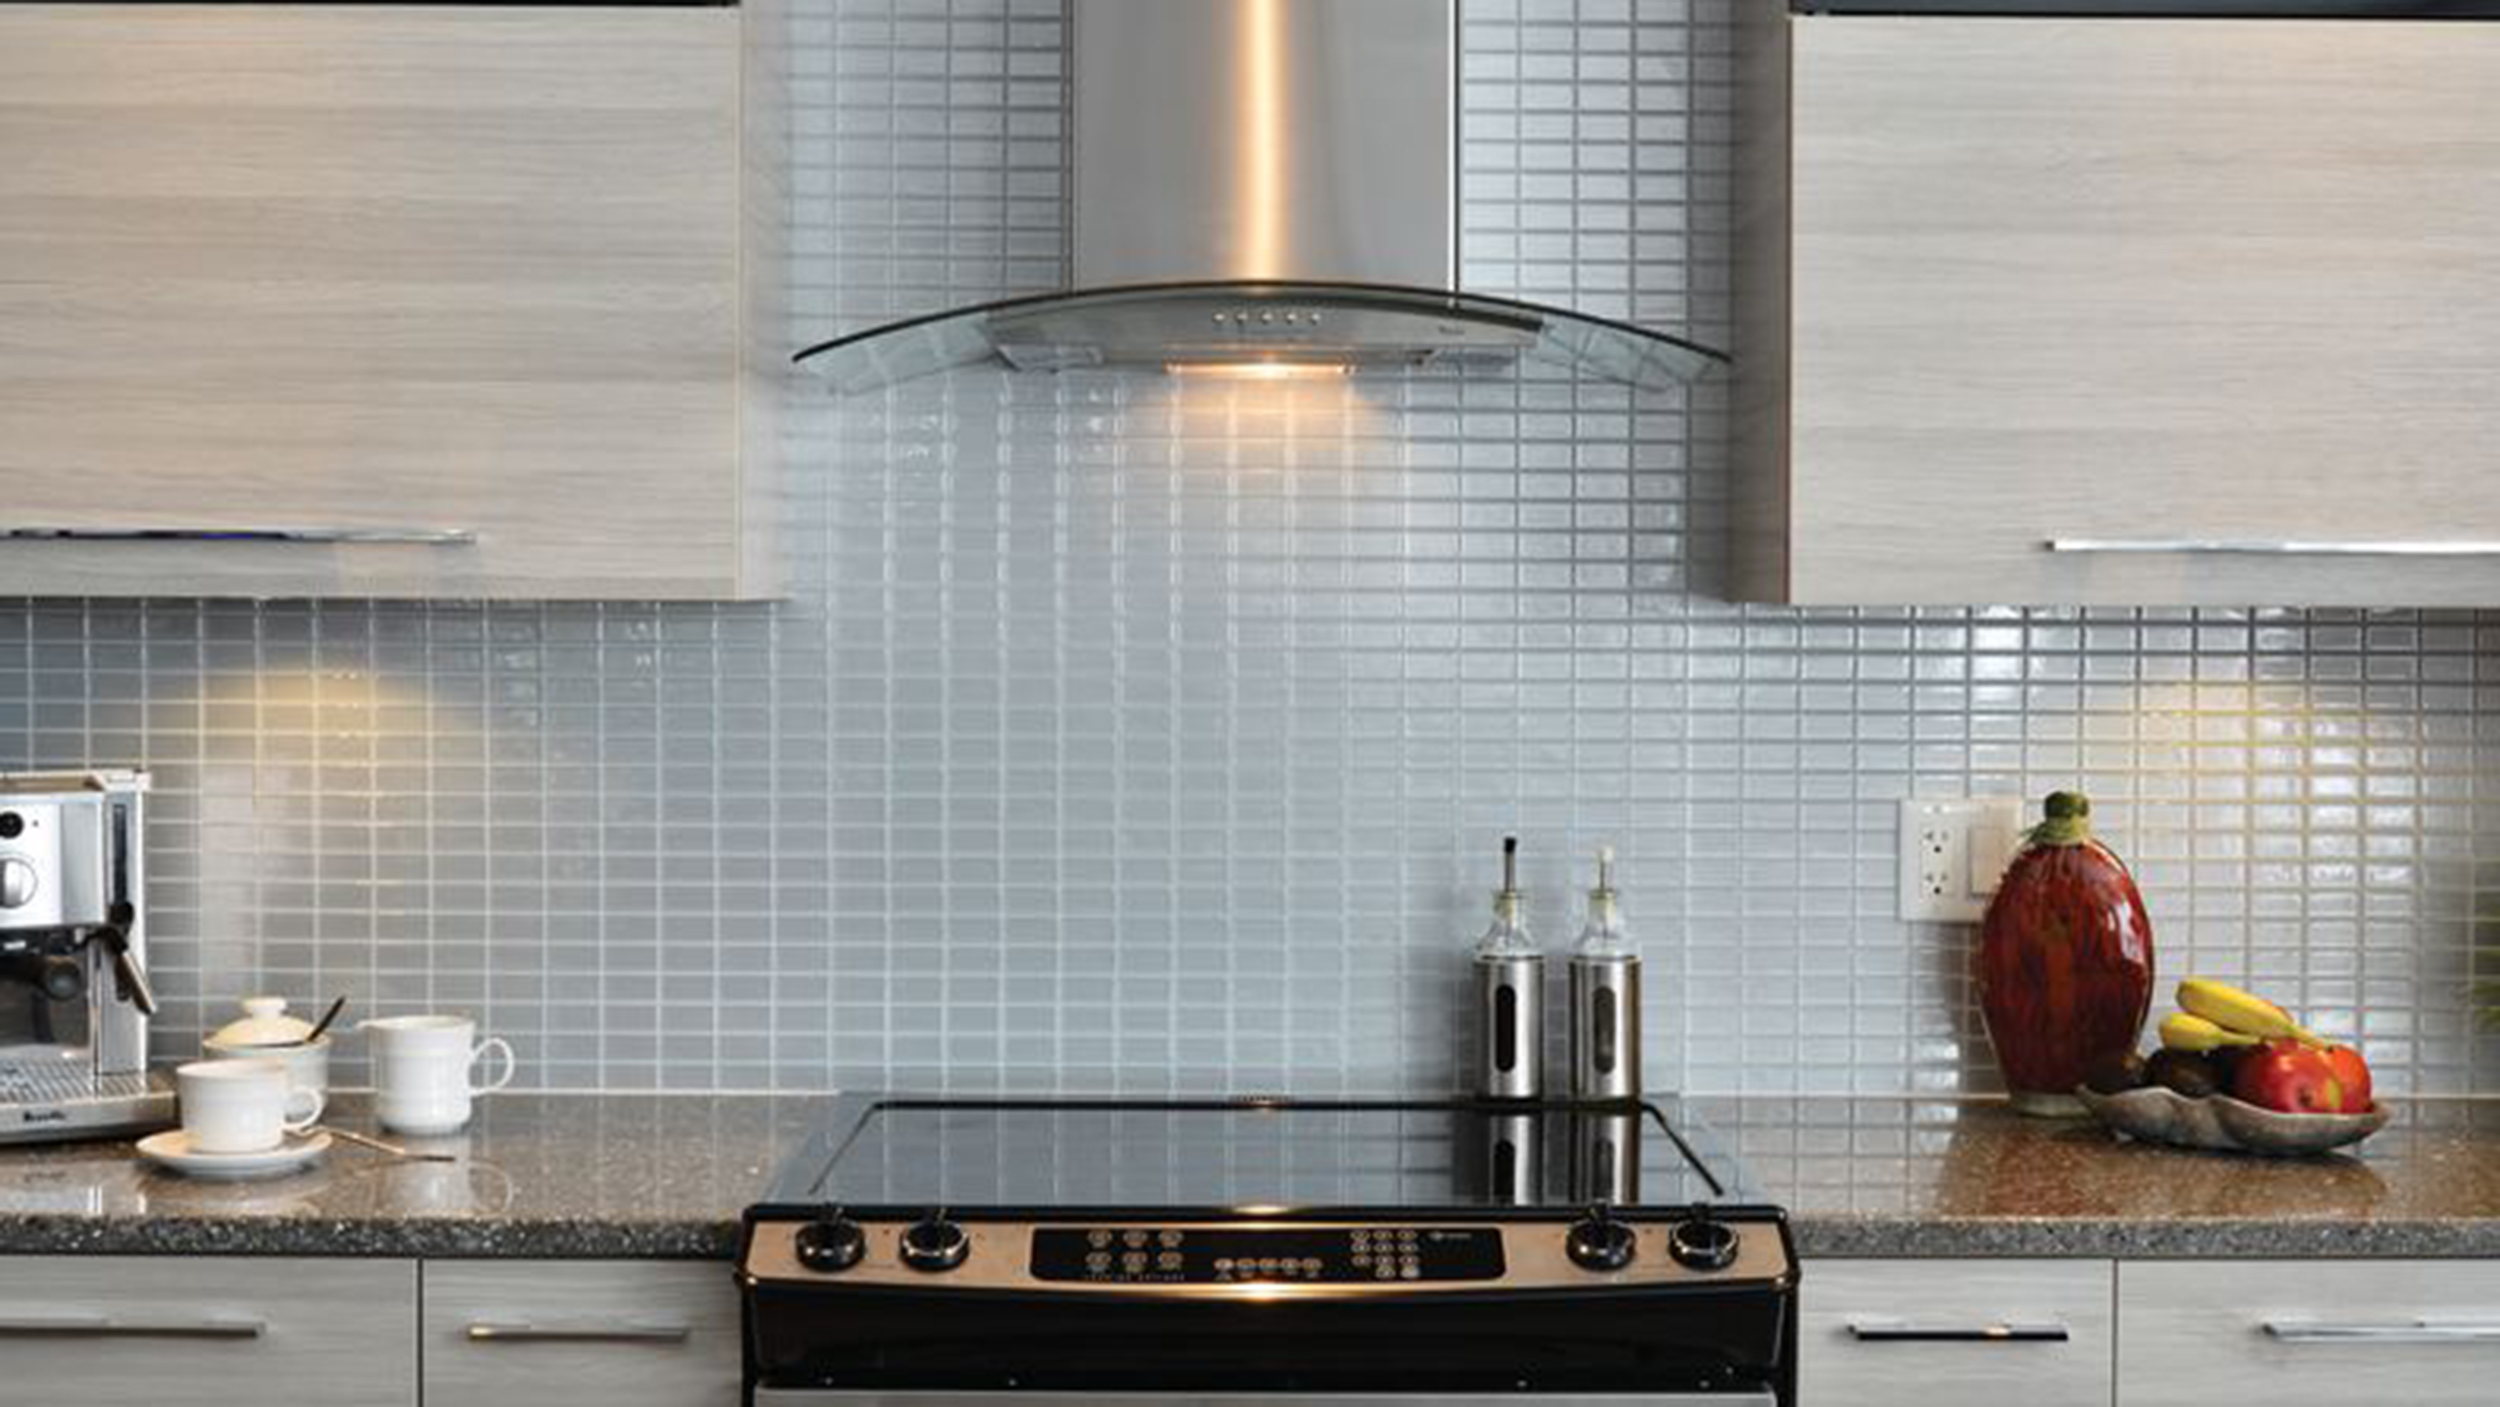 Kitchen Tiles Home Depot kitchen tile makeover: use smart tiles to update your backsplash